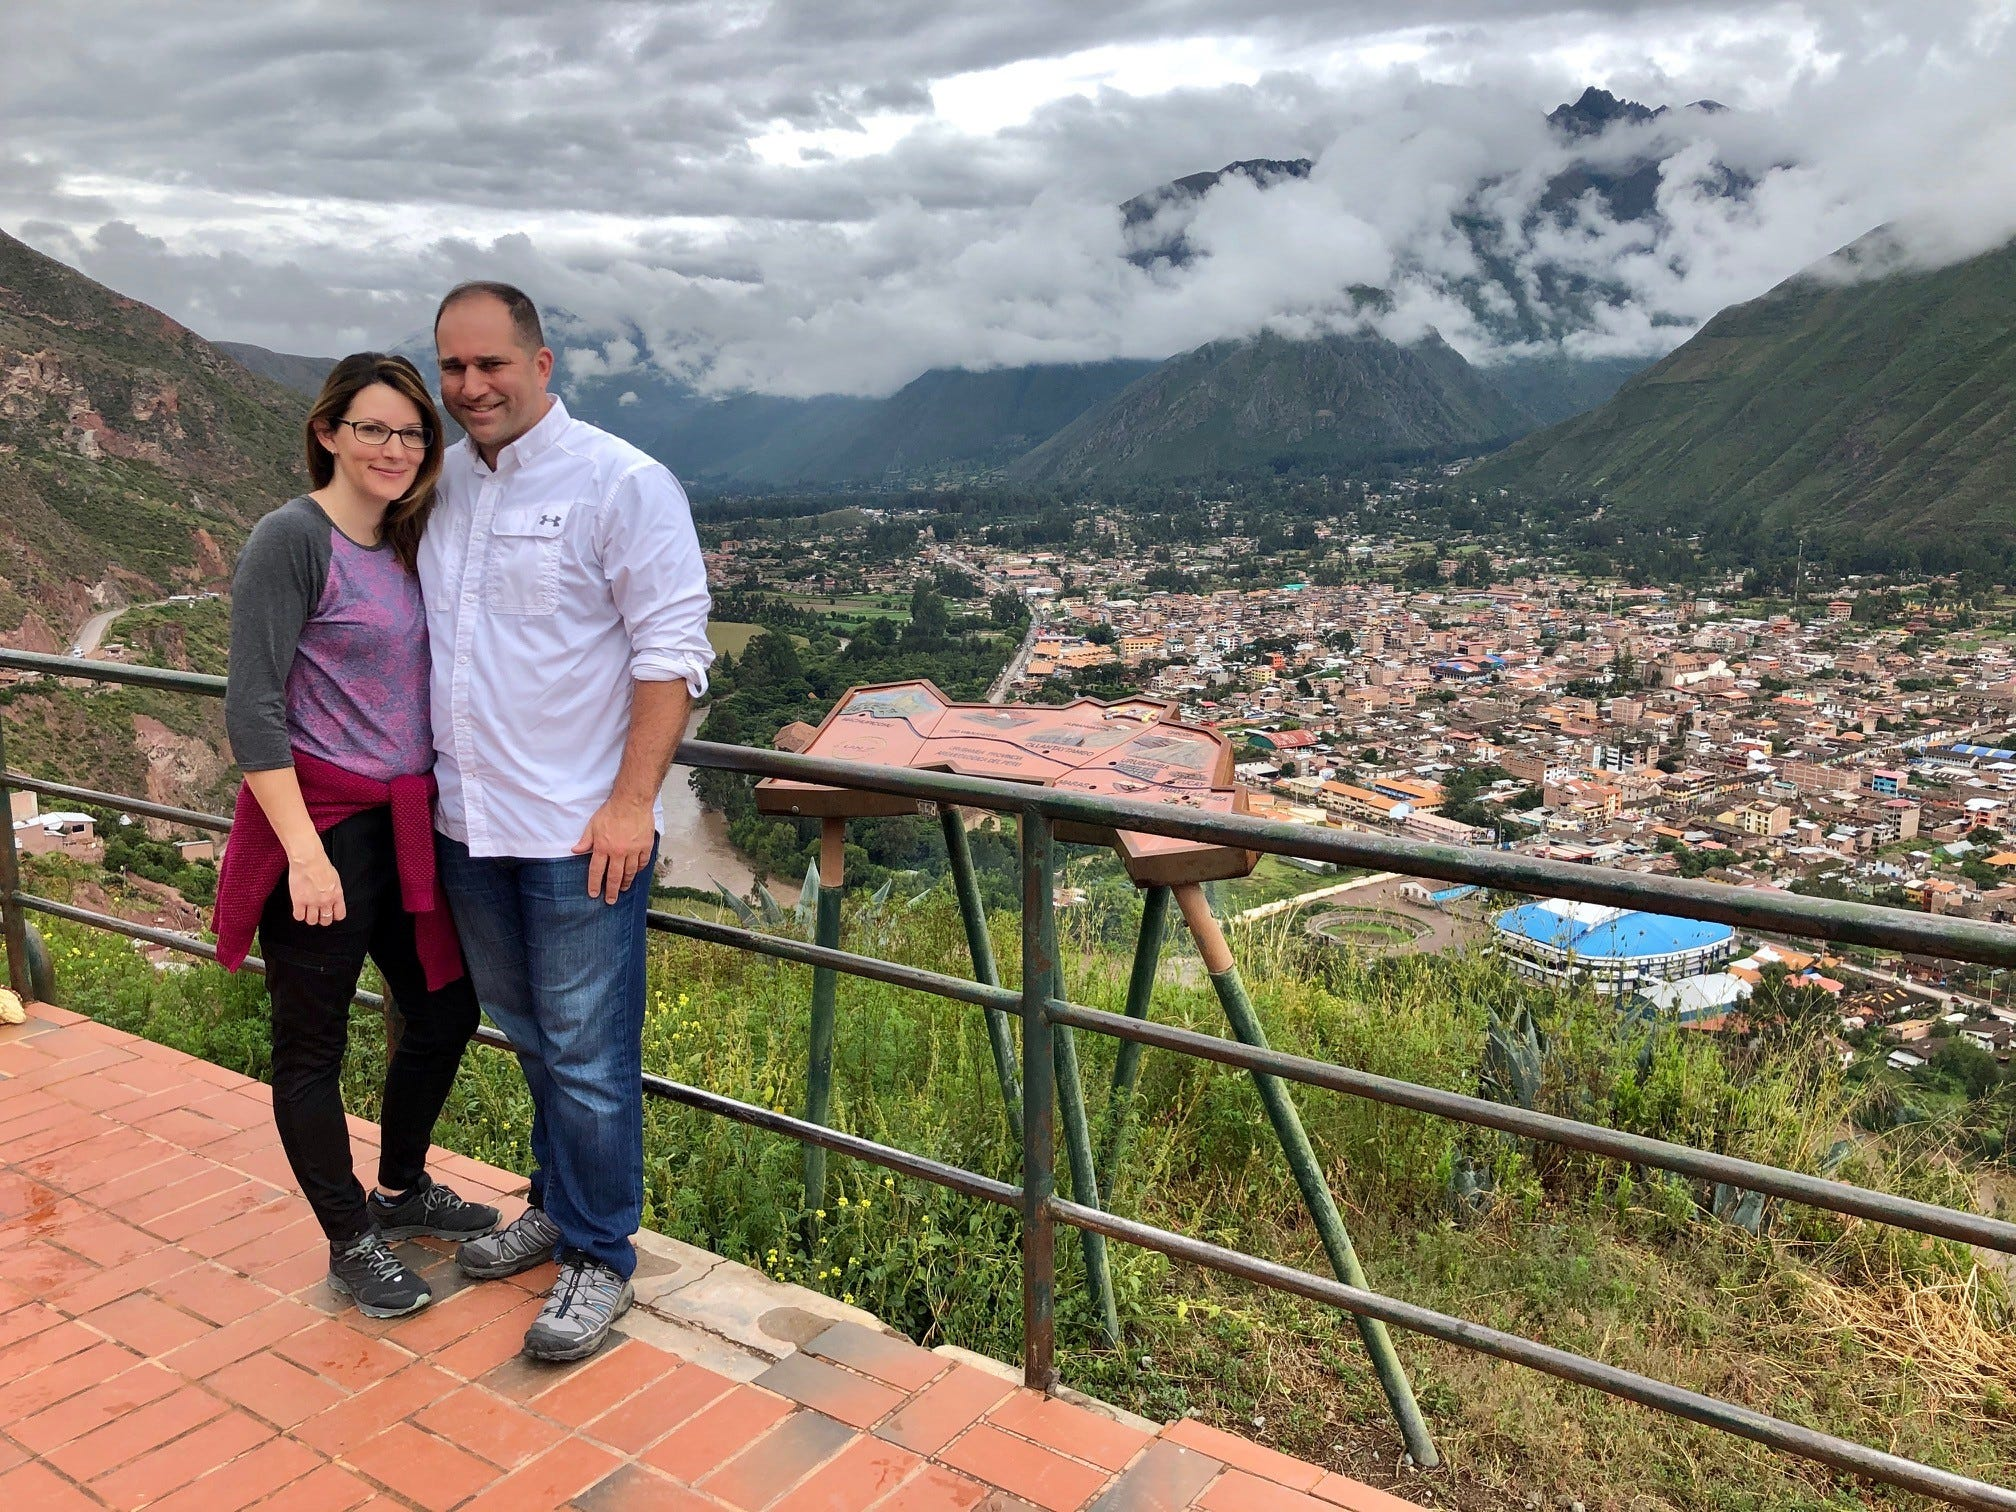 Linda Scruggs and Mike Rustici, Williamson County residents, were on vacation in Peru when the country went on lockdown in response to the spread of the deadly COVID-19 pandemic. The couple were able to make it to Lima, where they're staying in a hotel waiting for any chance to get a flight home.